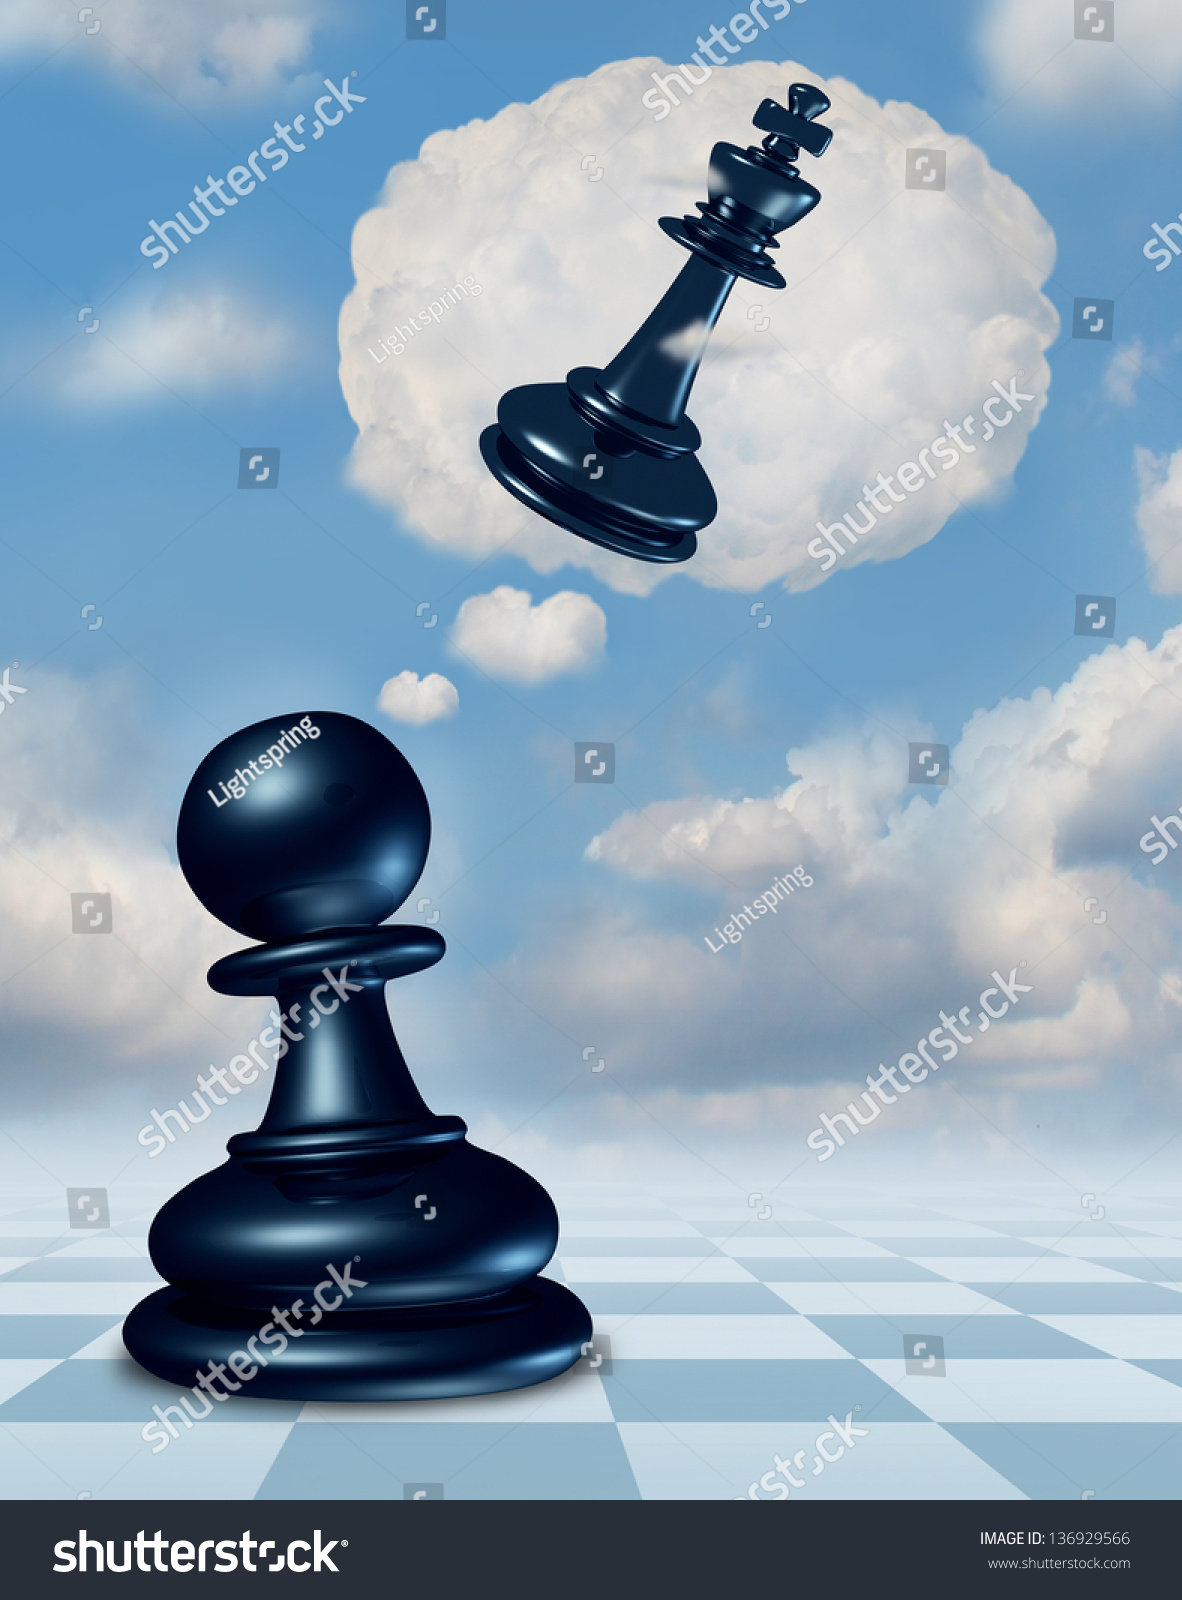 dreaming success chess game pawn piece stock illustration dreaming of success as a chess game pawn piece aspirations of becoming a king and